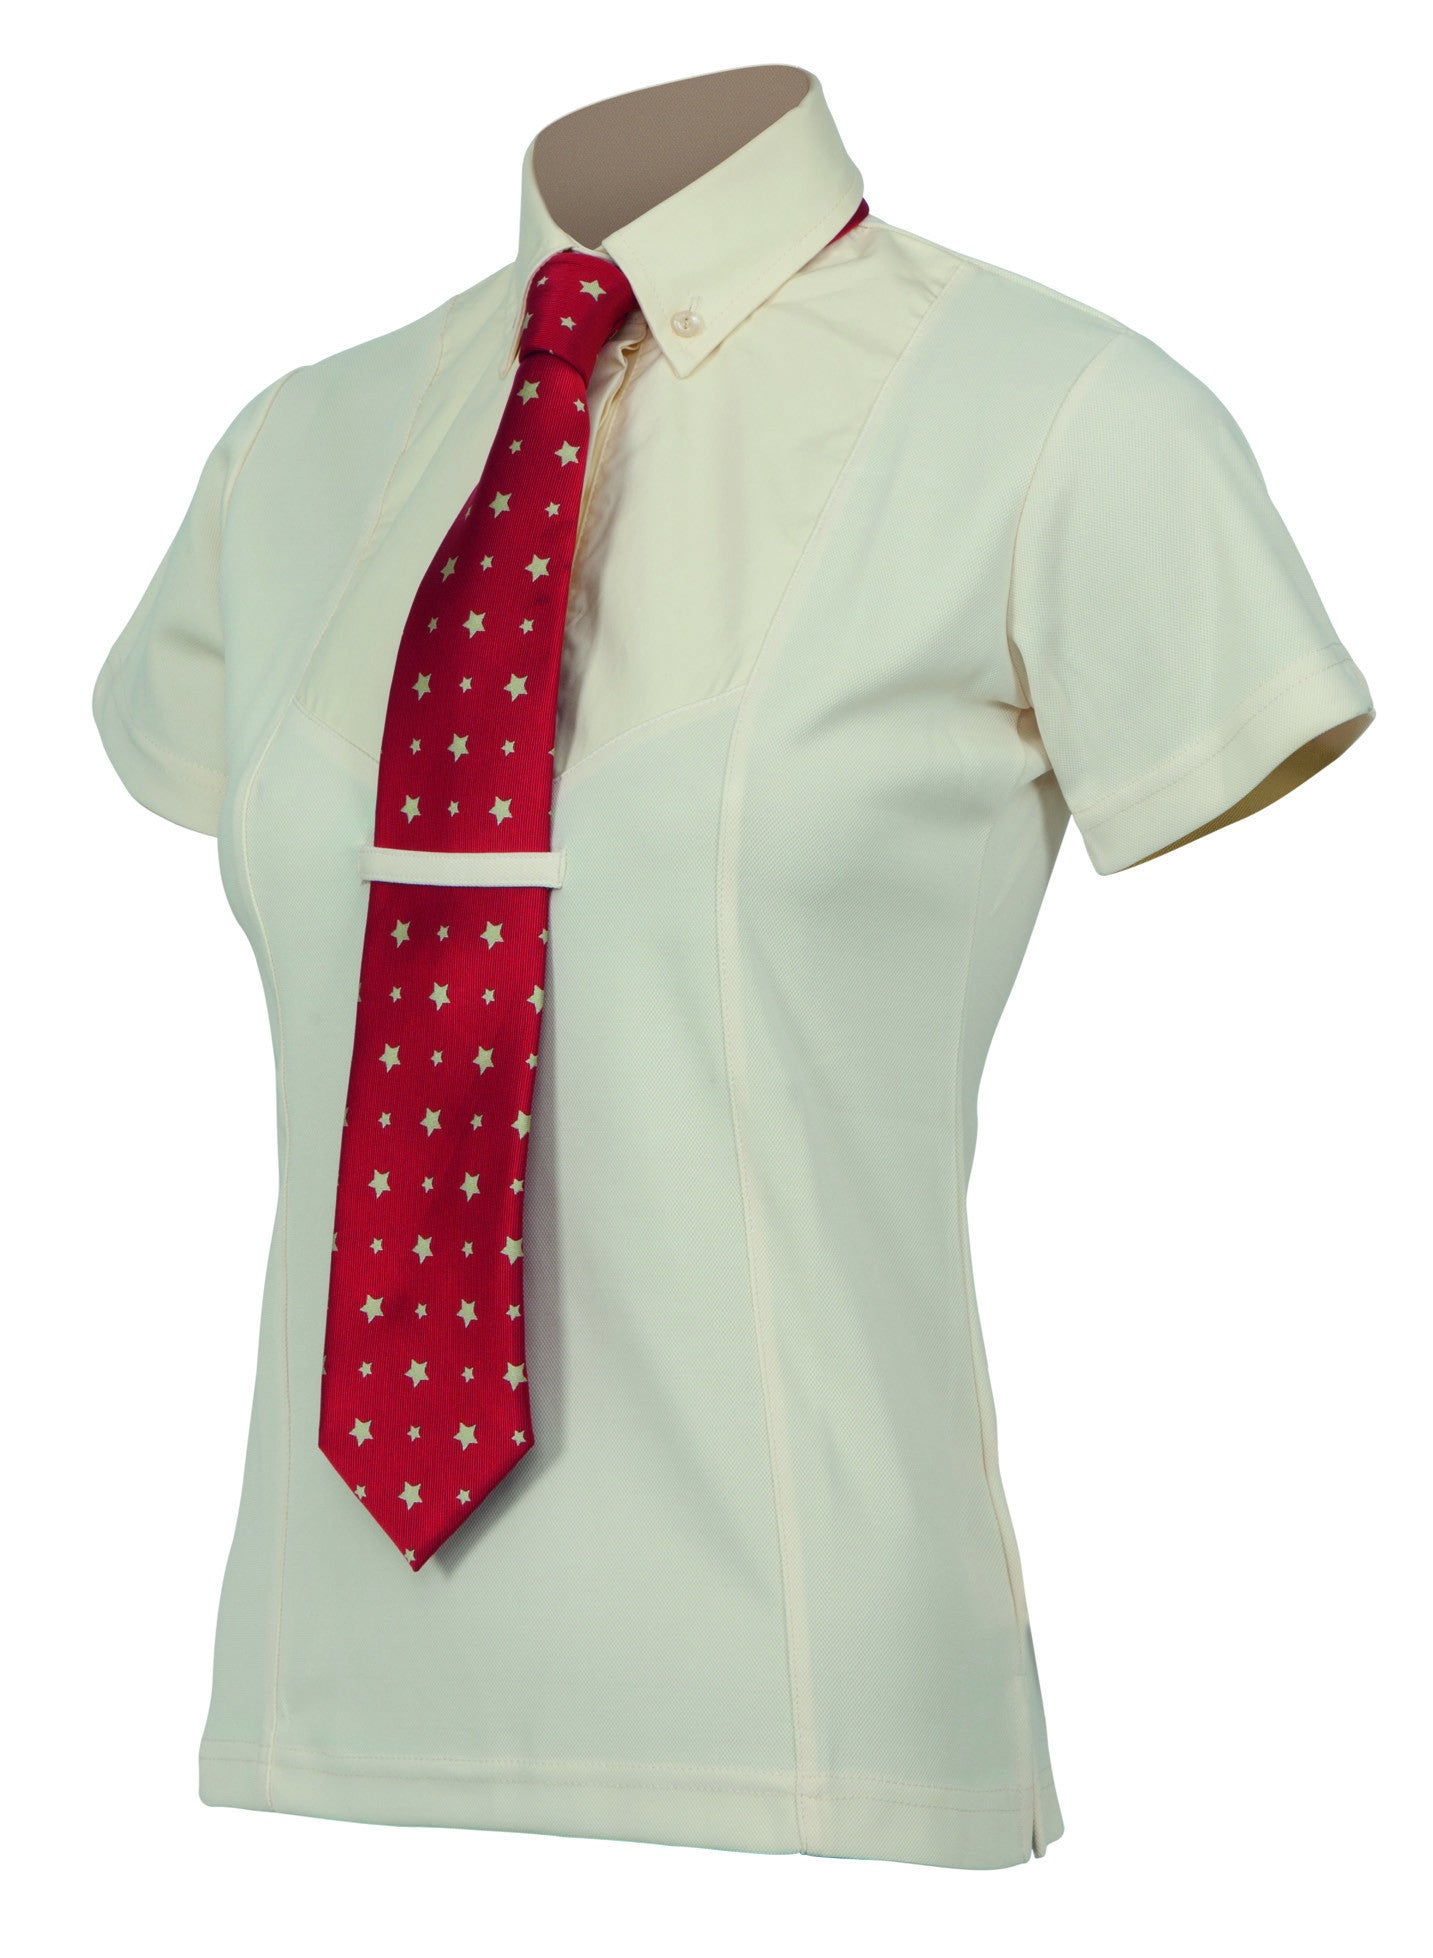 Short Sleeve Tie Shirt - Children's